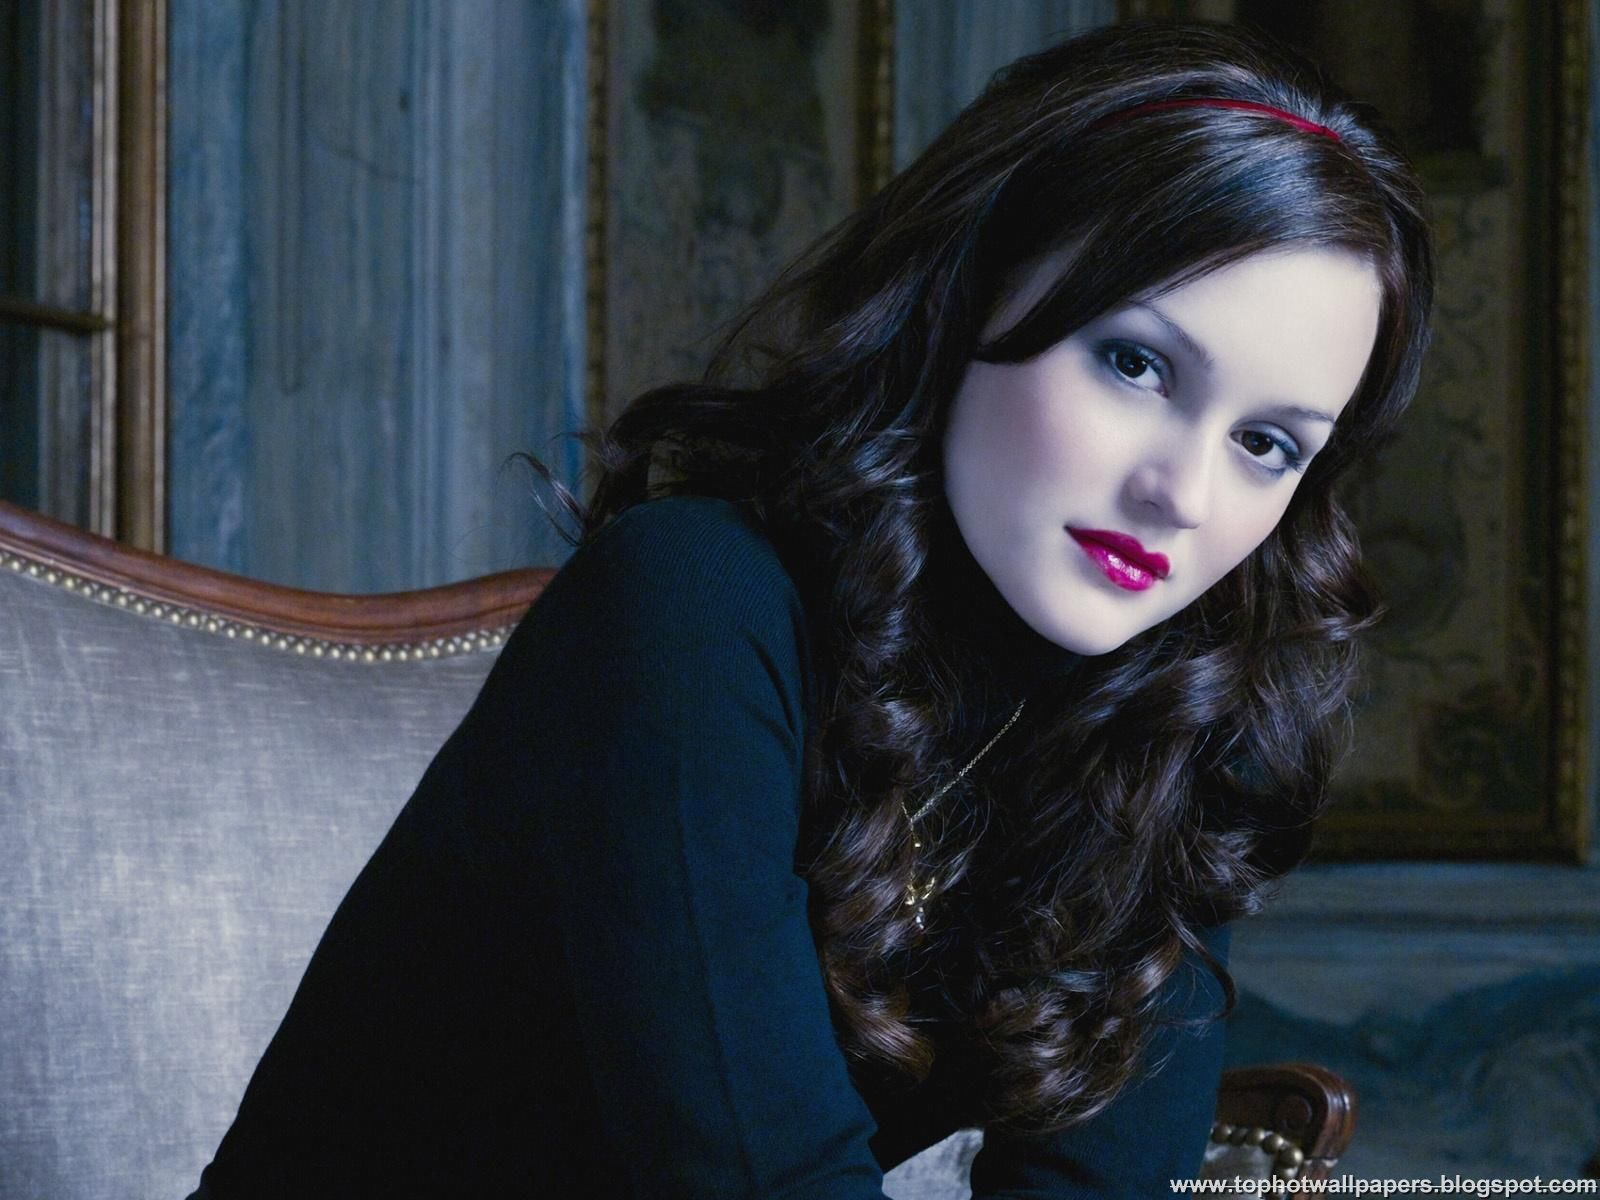 Leighton Meester Hairstyles And Fashion Mode In 2011